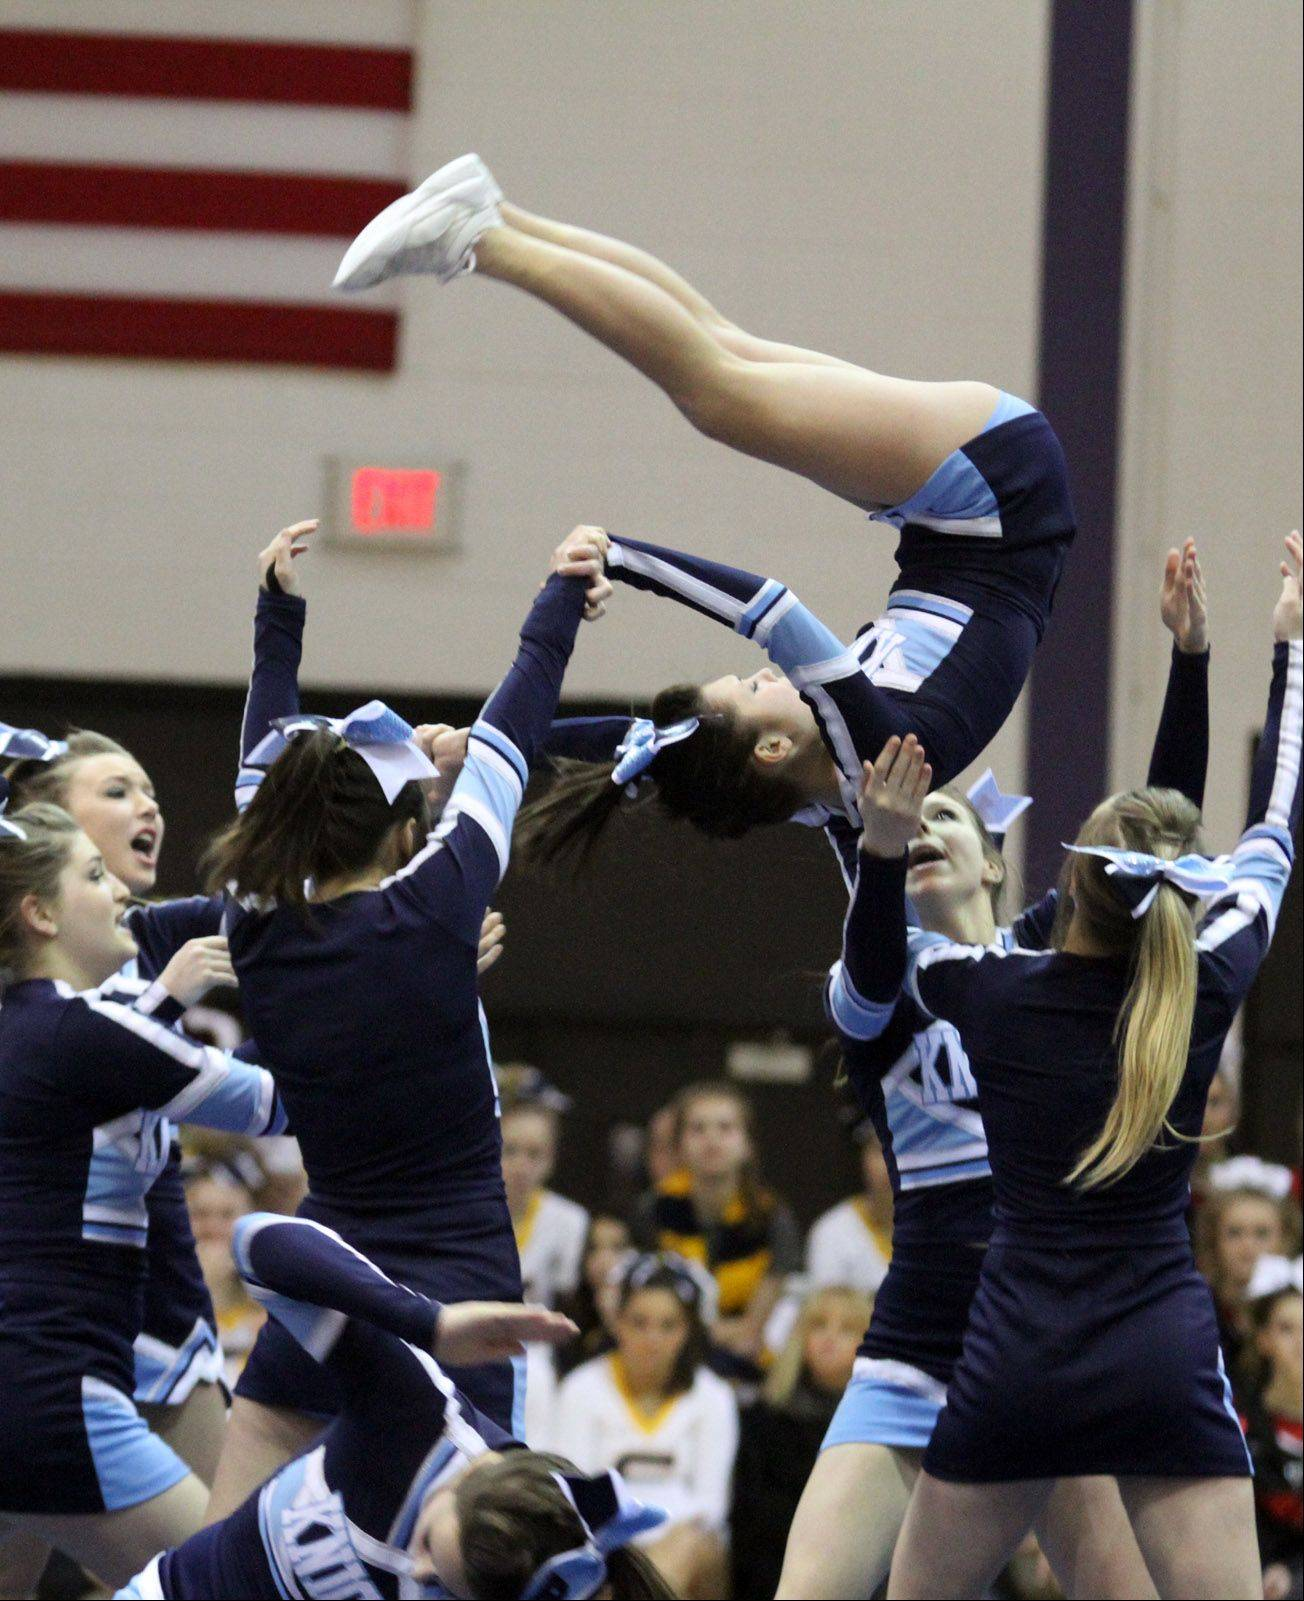 Prospect High School performs at the IHSA competitive cheerleading sectionals in Rolling Meadows on Saturday.